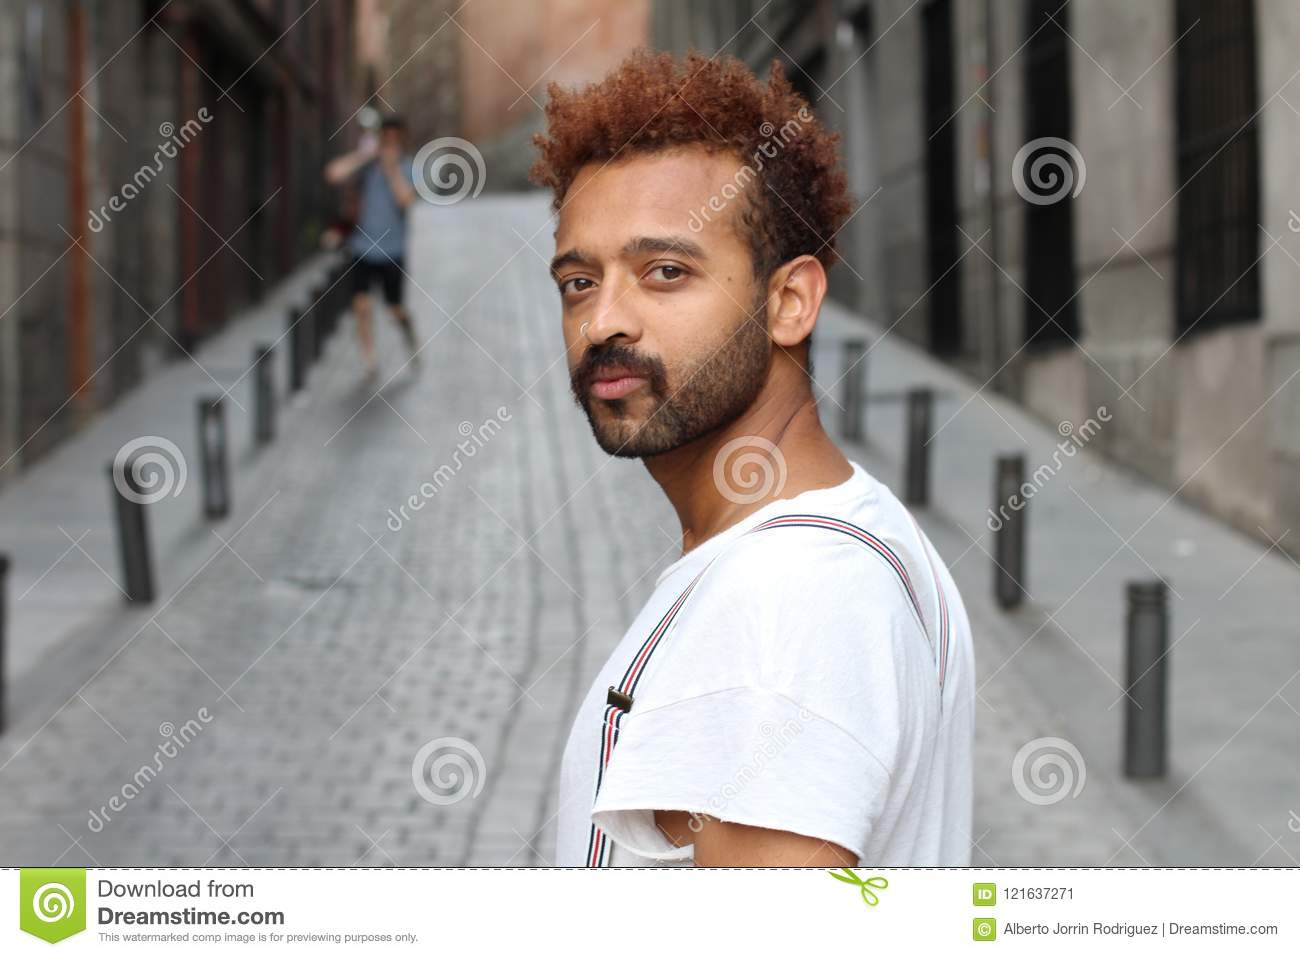 Afro man with neutral expression outdoors